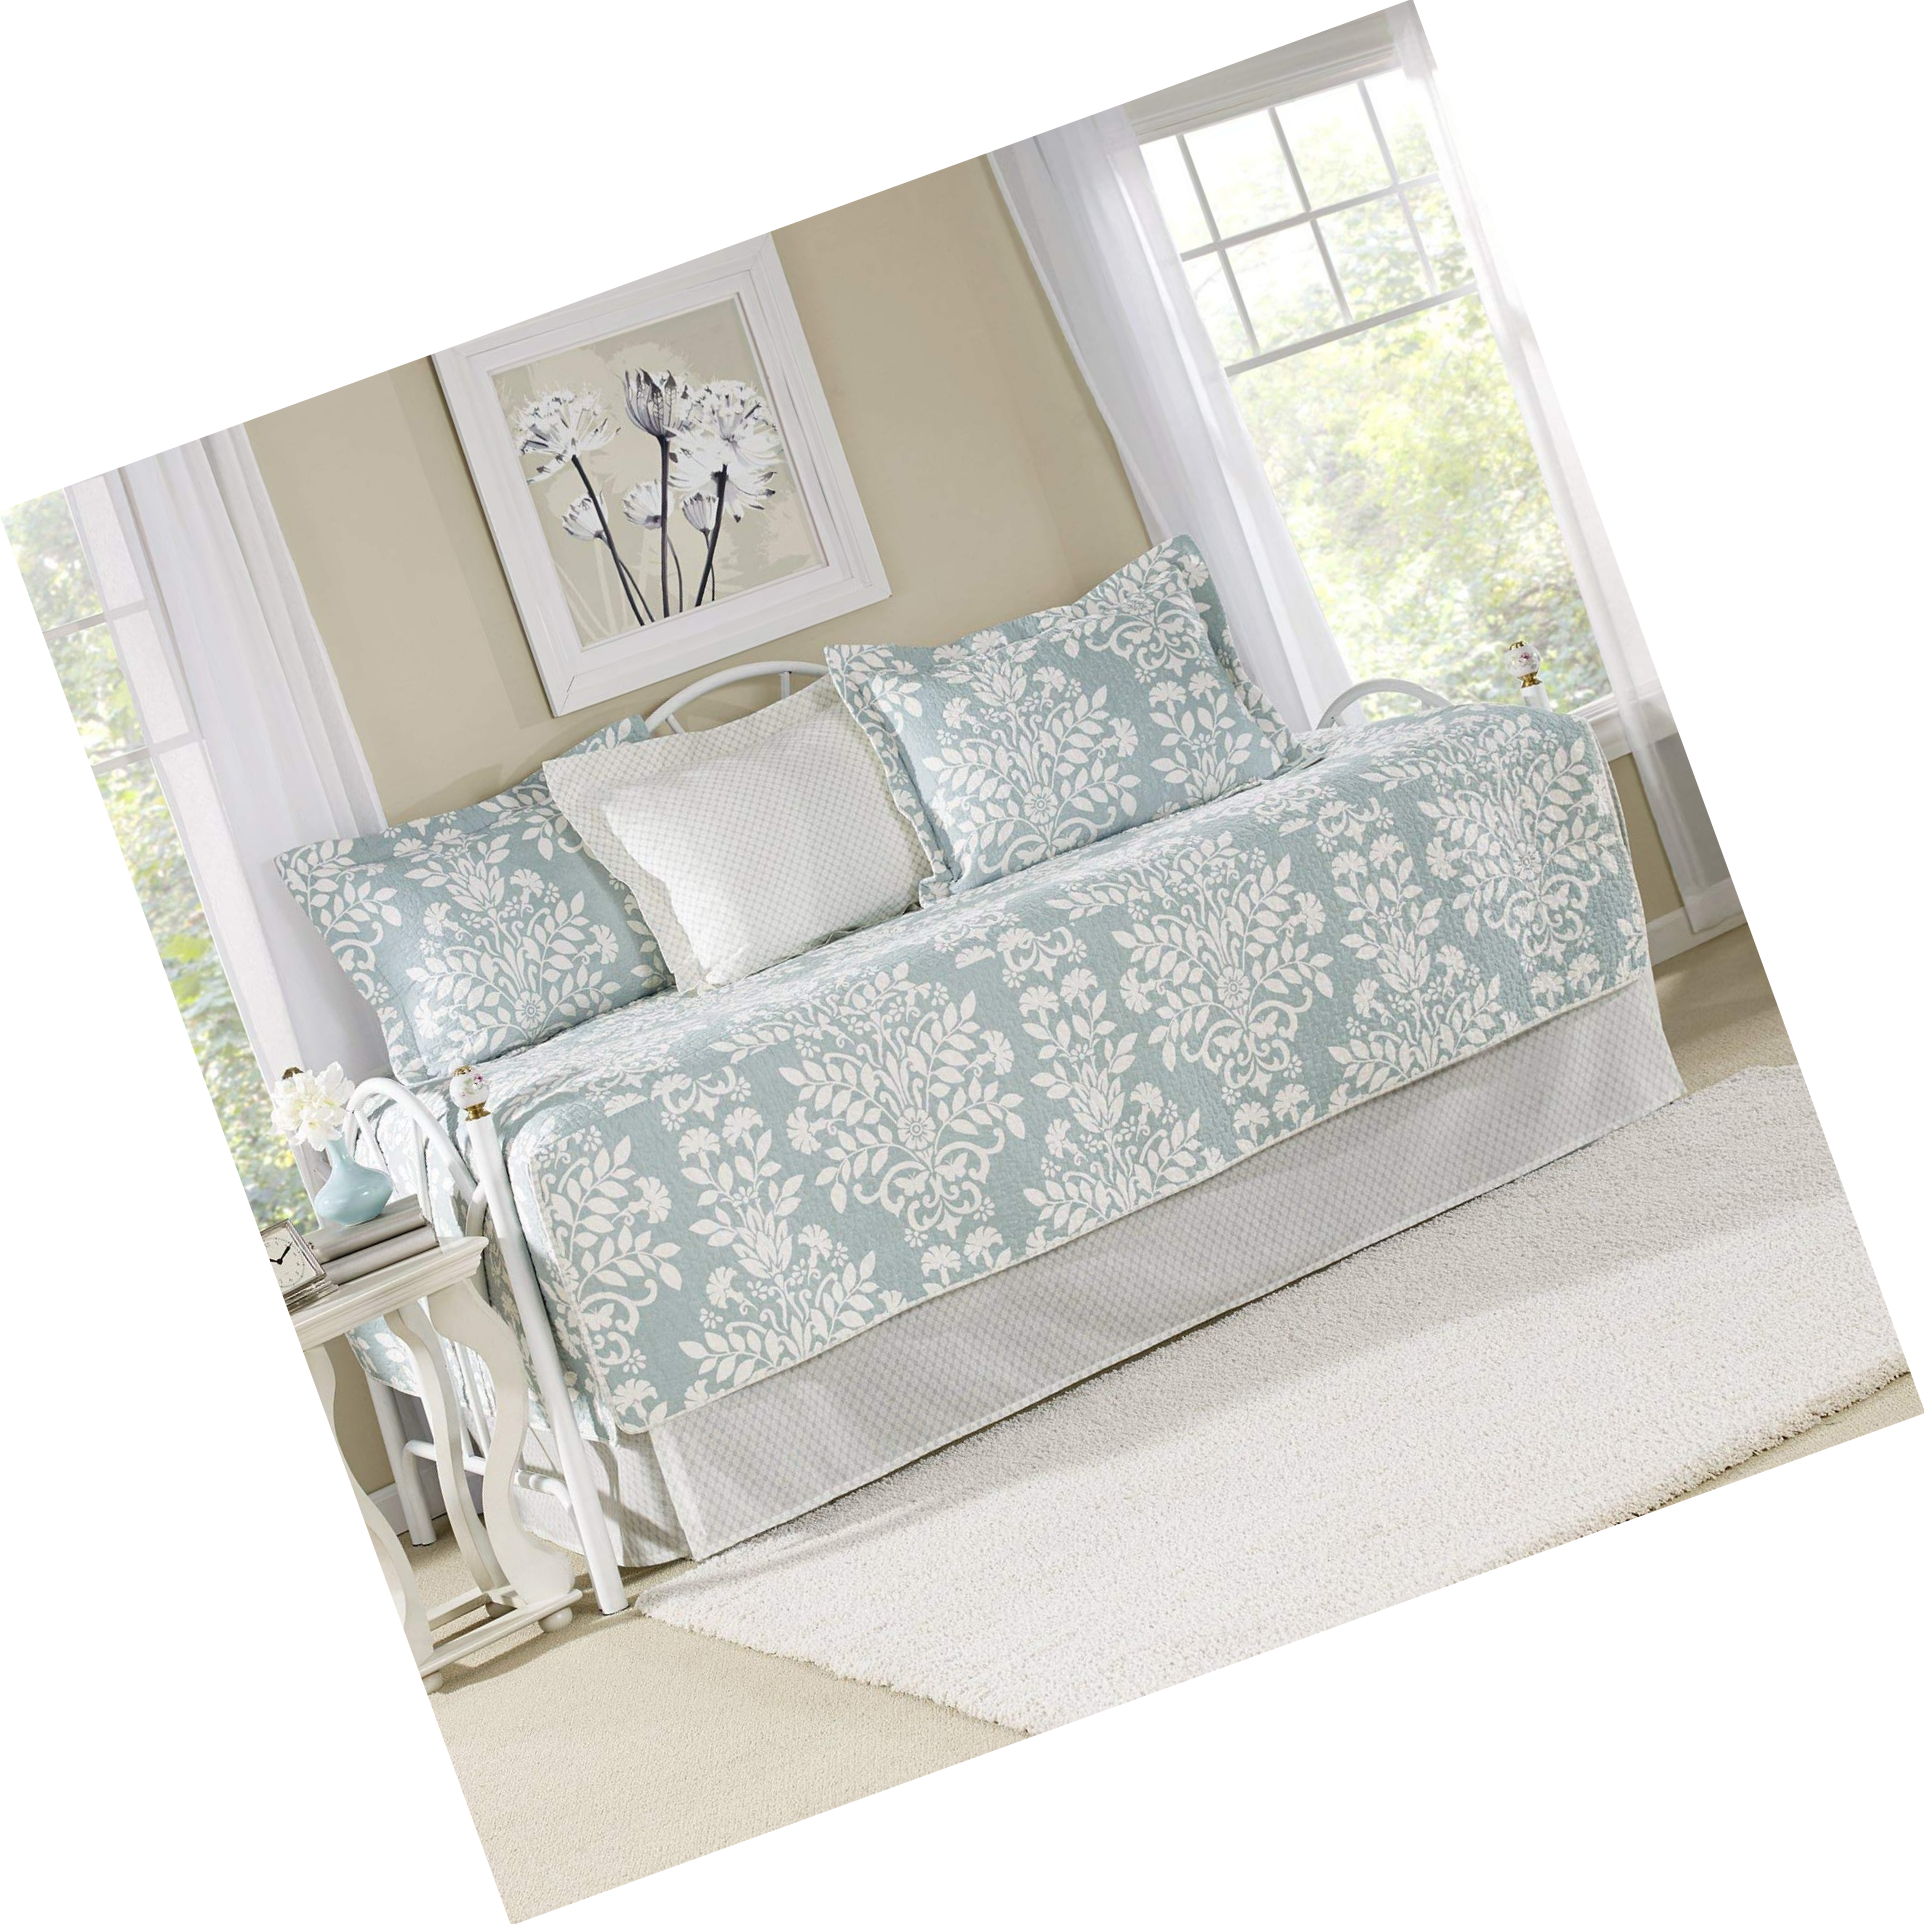 Laura Ashley 5 Piece Rowland Breeze Daybed Cover Set, Blue